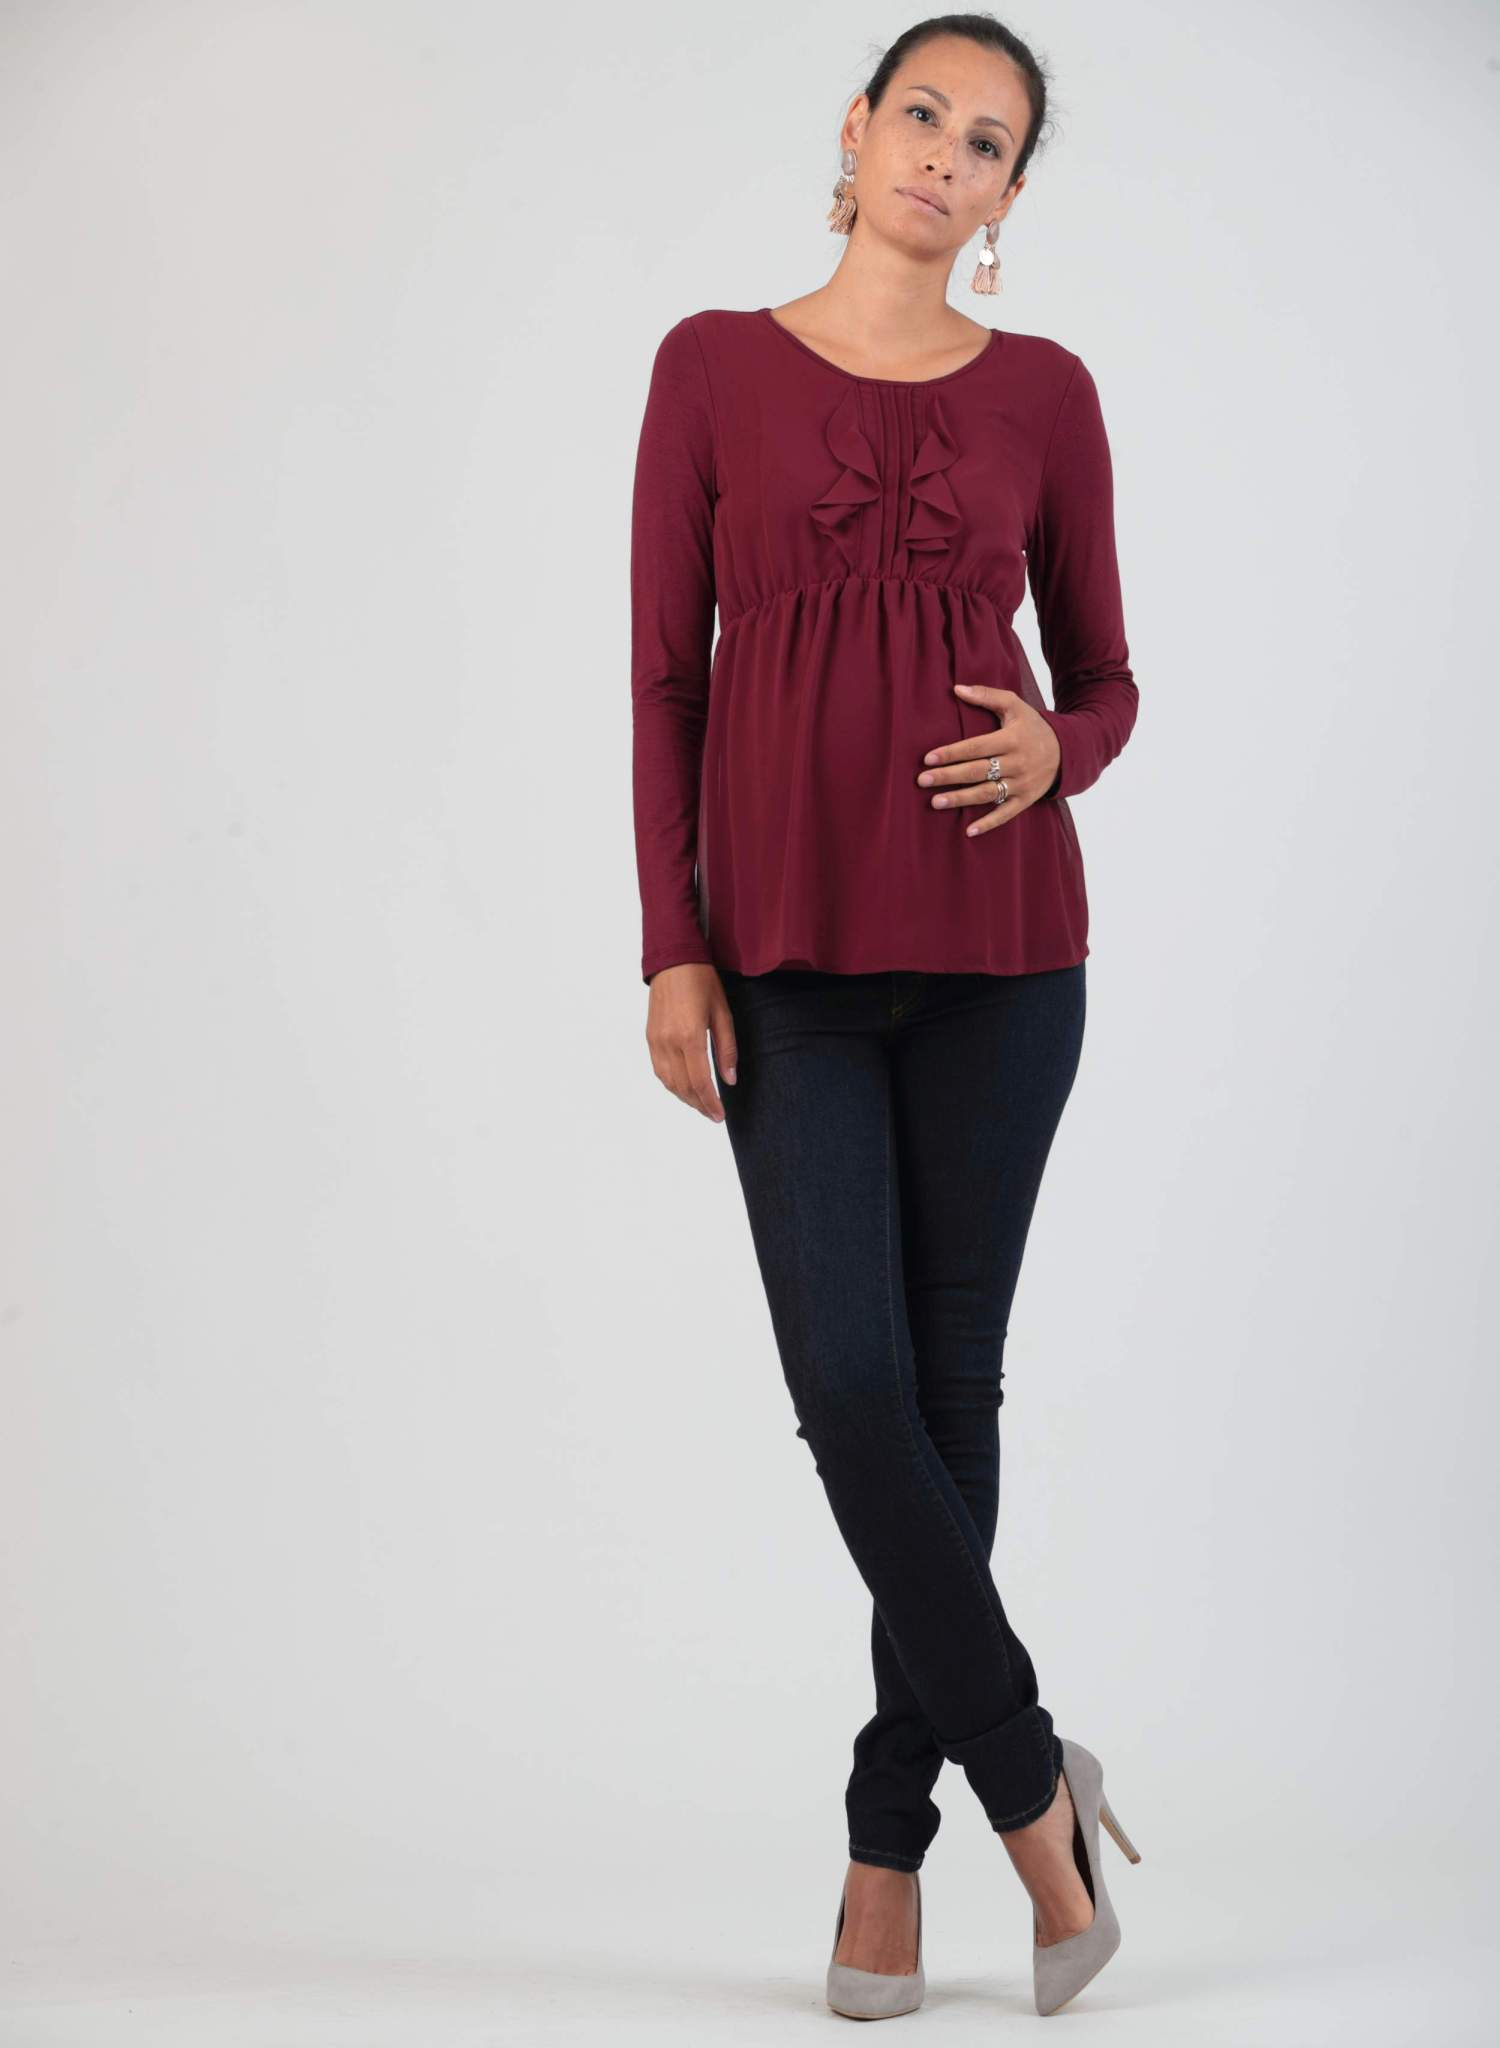 Maternity Top with Chiffon Frills